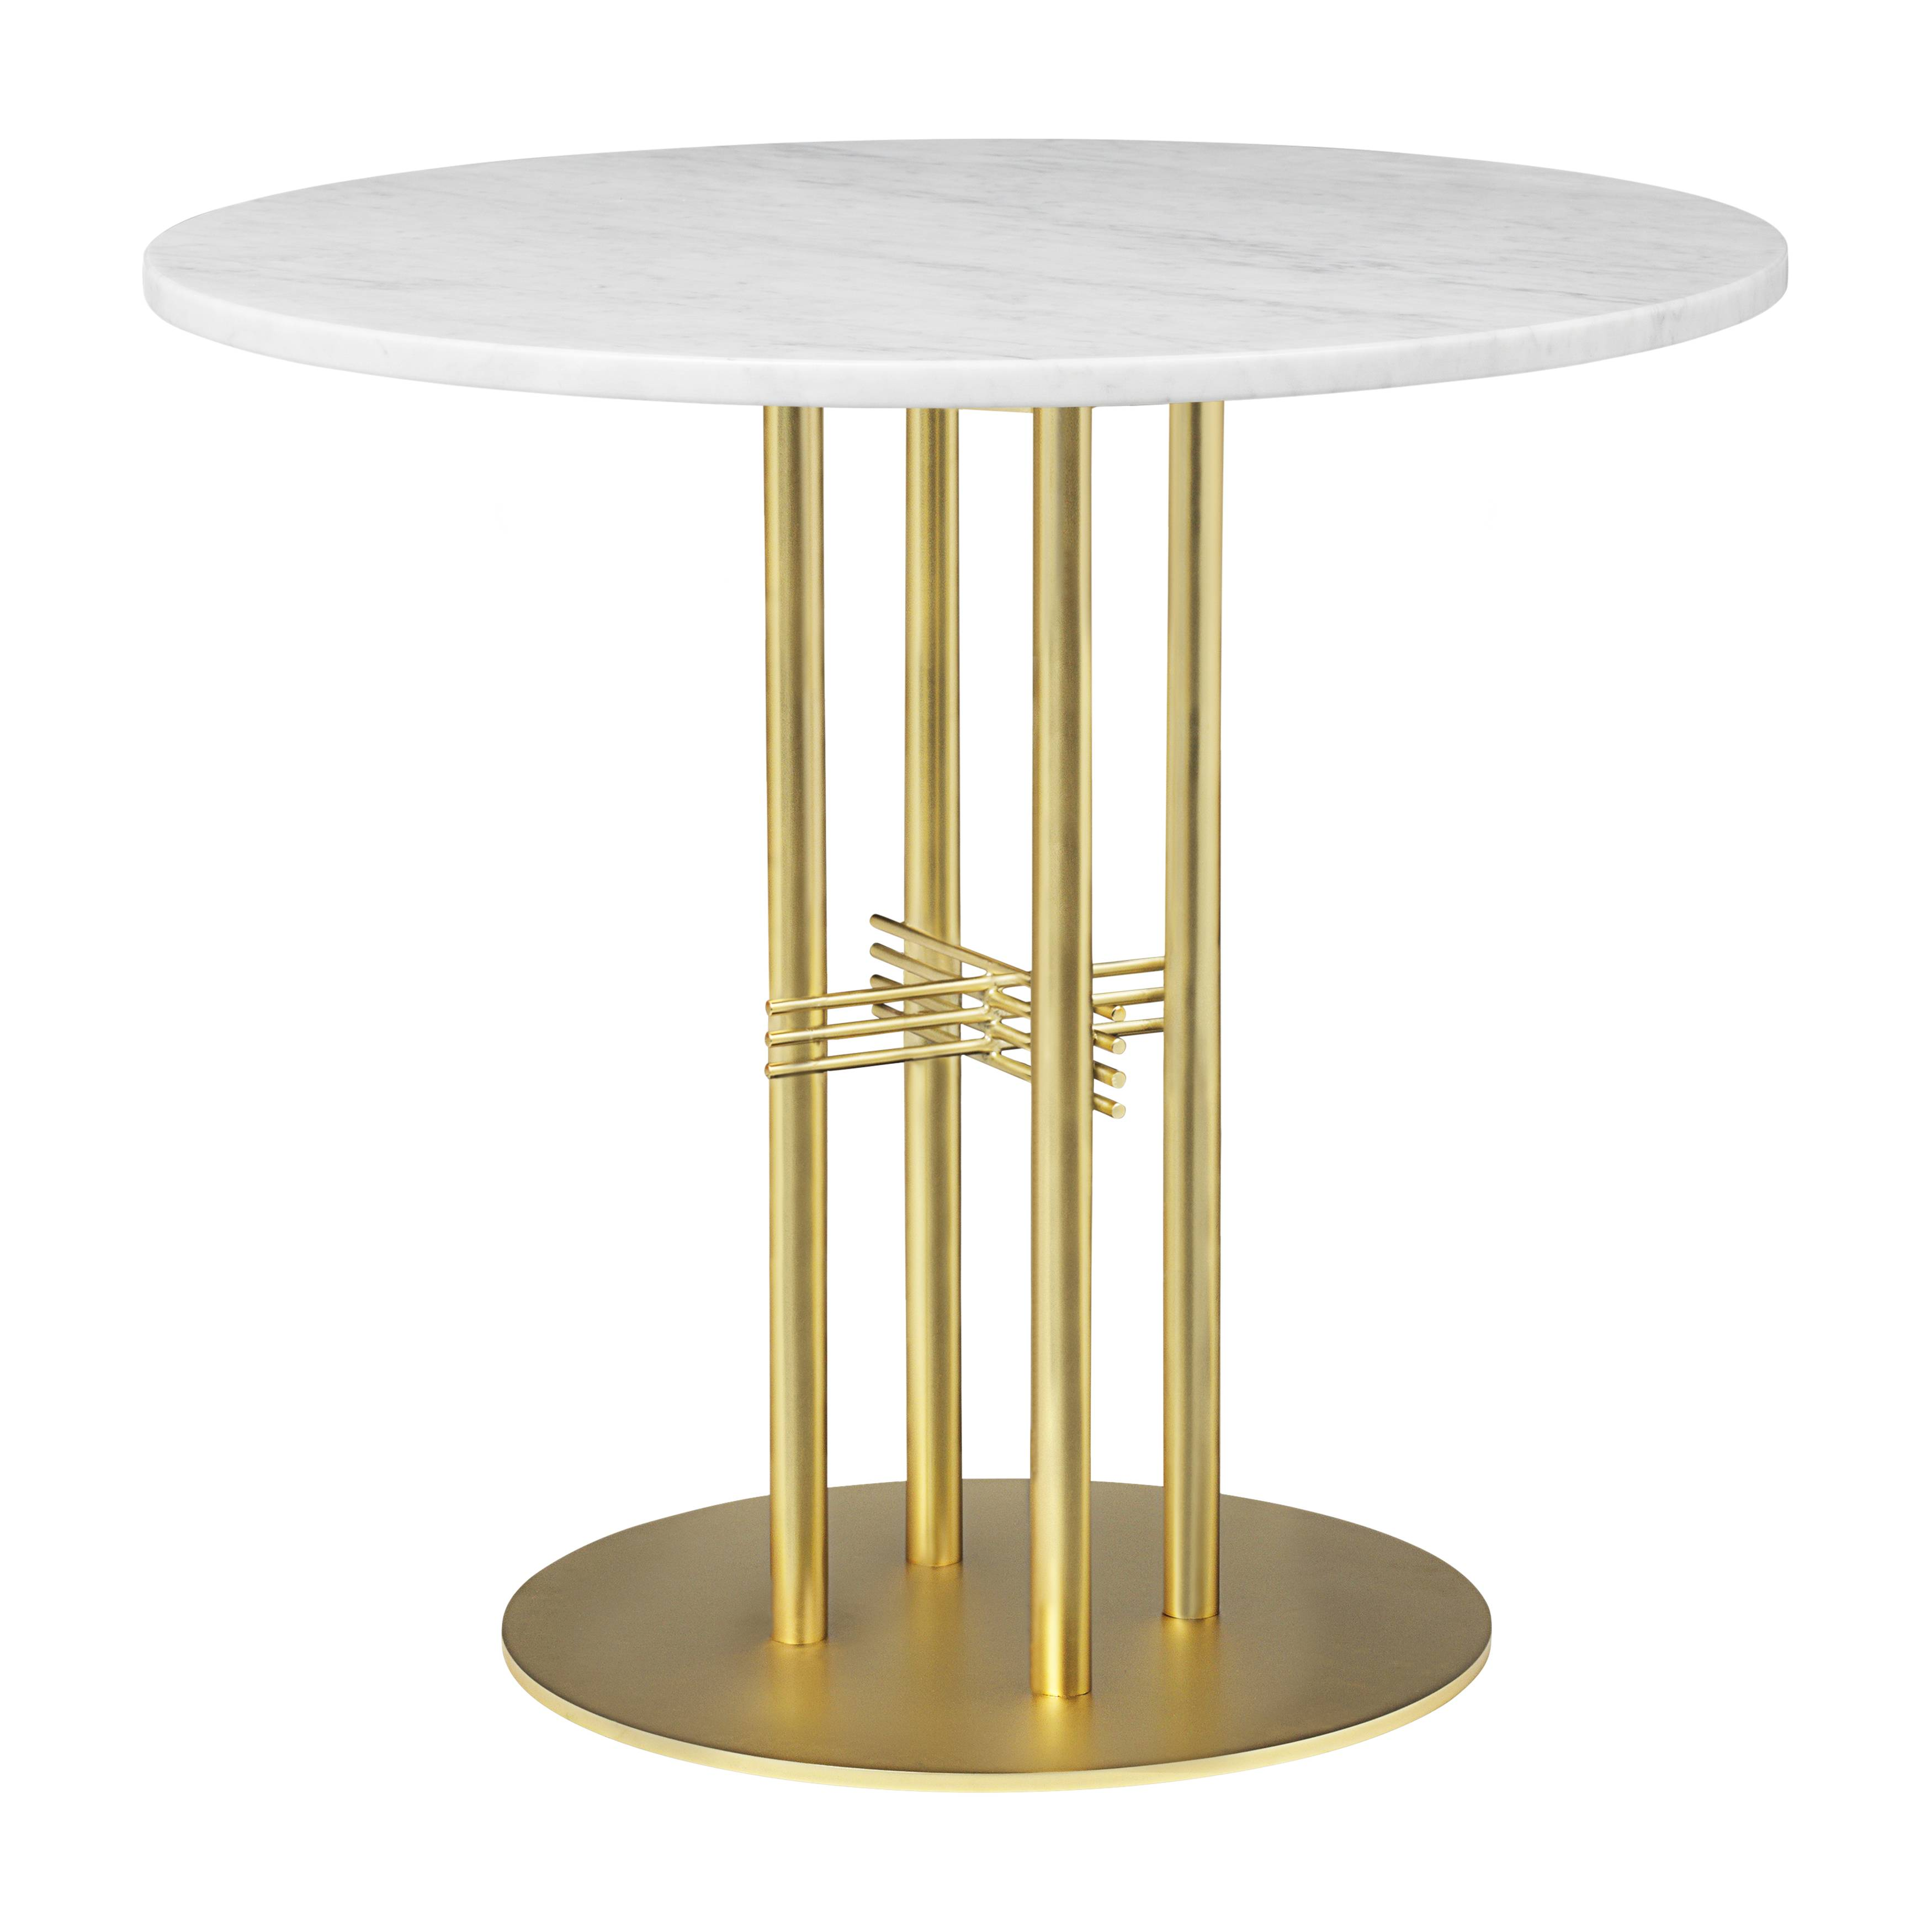 TS Column Dining Table: Small + Brass Base + White Carrara Marble